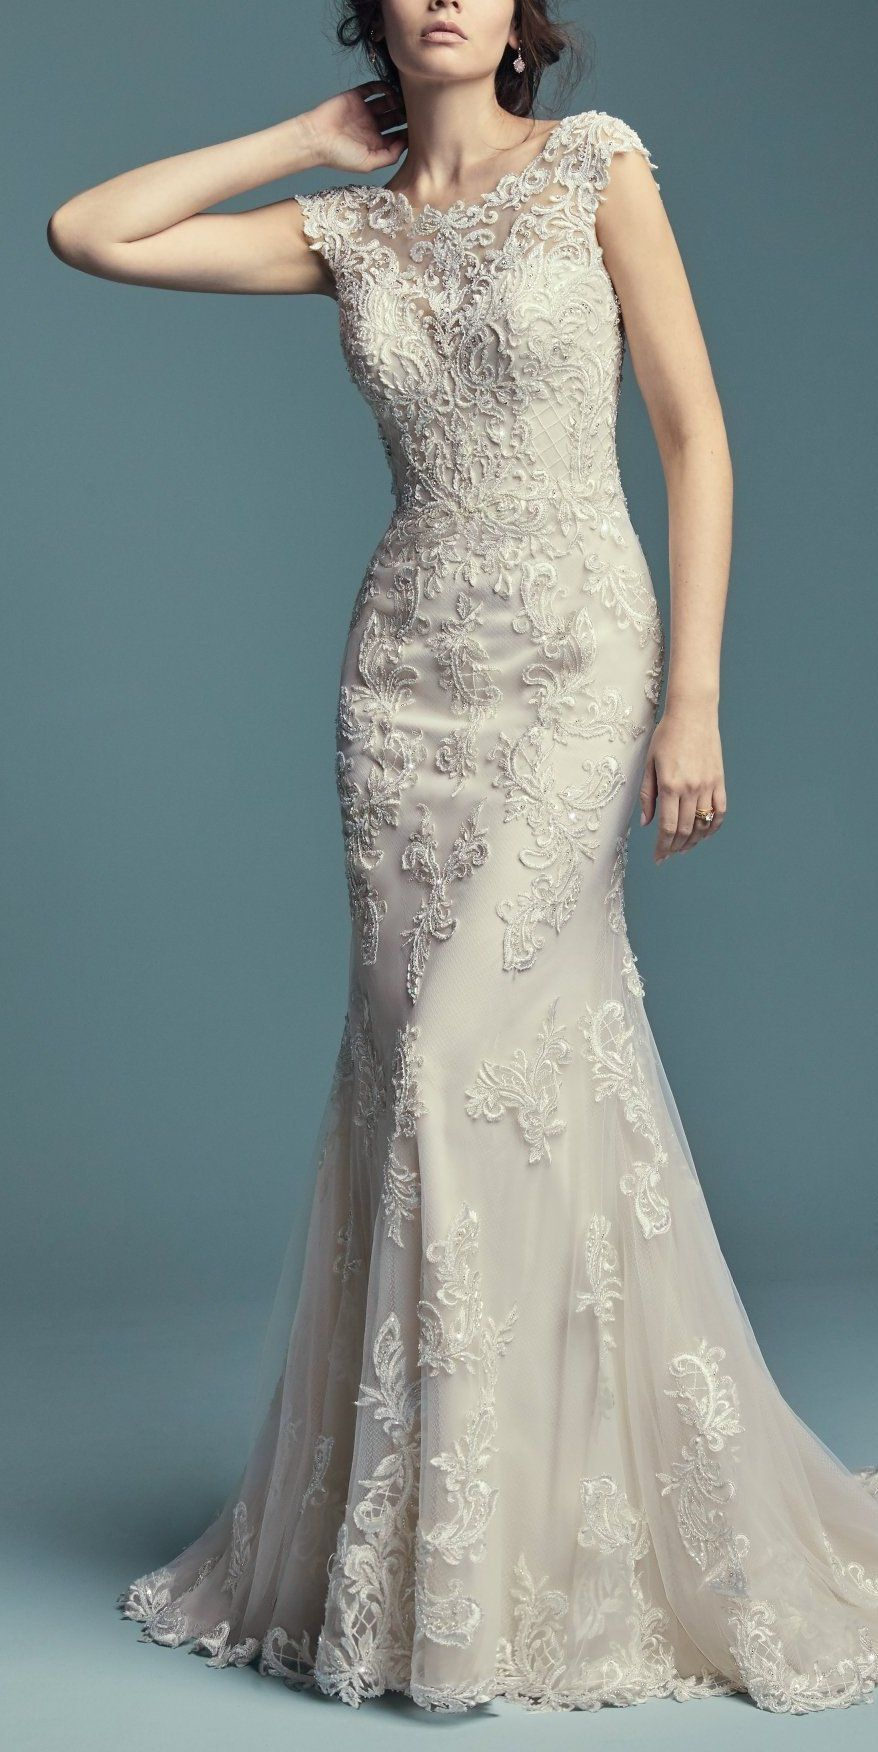 b20edba8 Maggie Sottero - ROSANNA, This lovely sheath wedding gown features beaded  lace motifs accented in Swarovski crystals atop tulle, creating an illusion  bateau ...